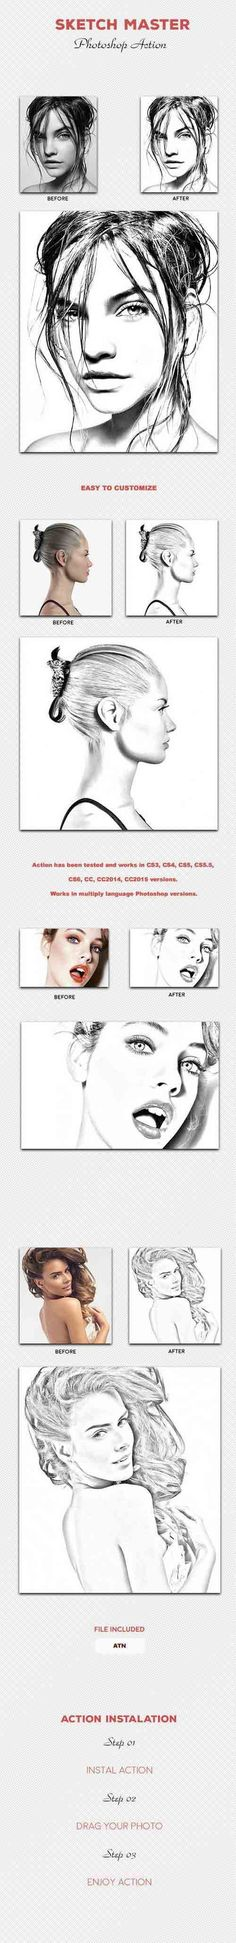 GR – Sketch Master – Photoshop Action 15970140 » HeroGFX Graphic Design